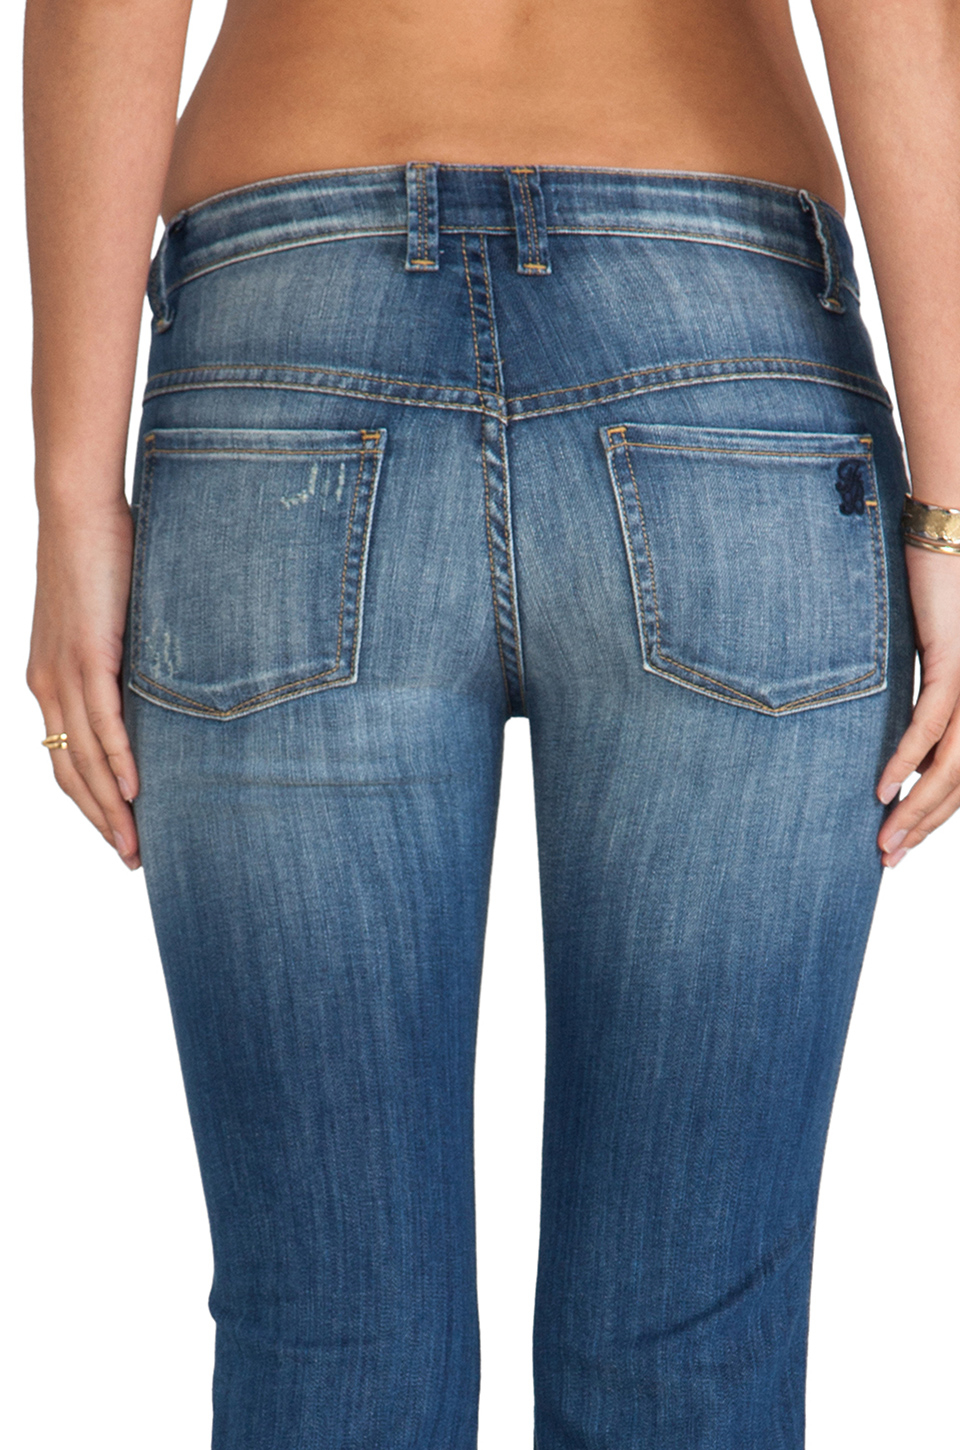 Frankie b. jeans Carly Hi Rise Wide Leg in Blue | Lyst